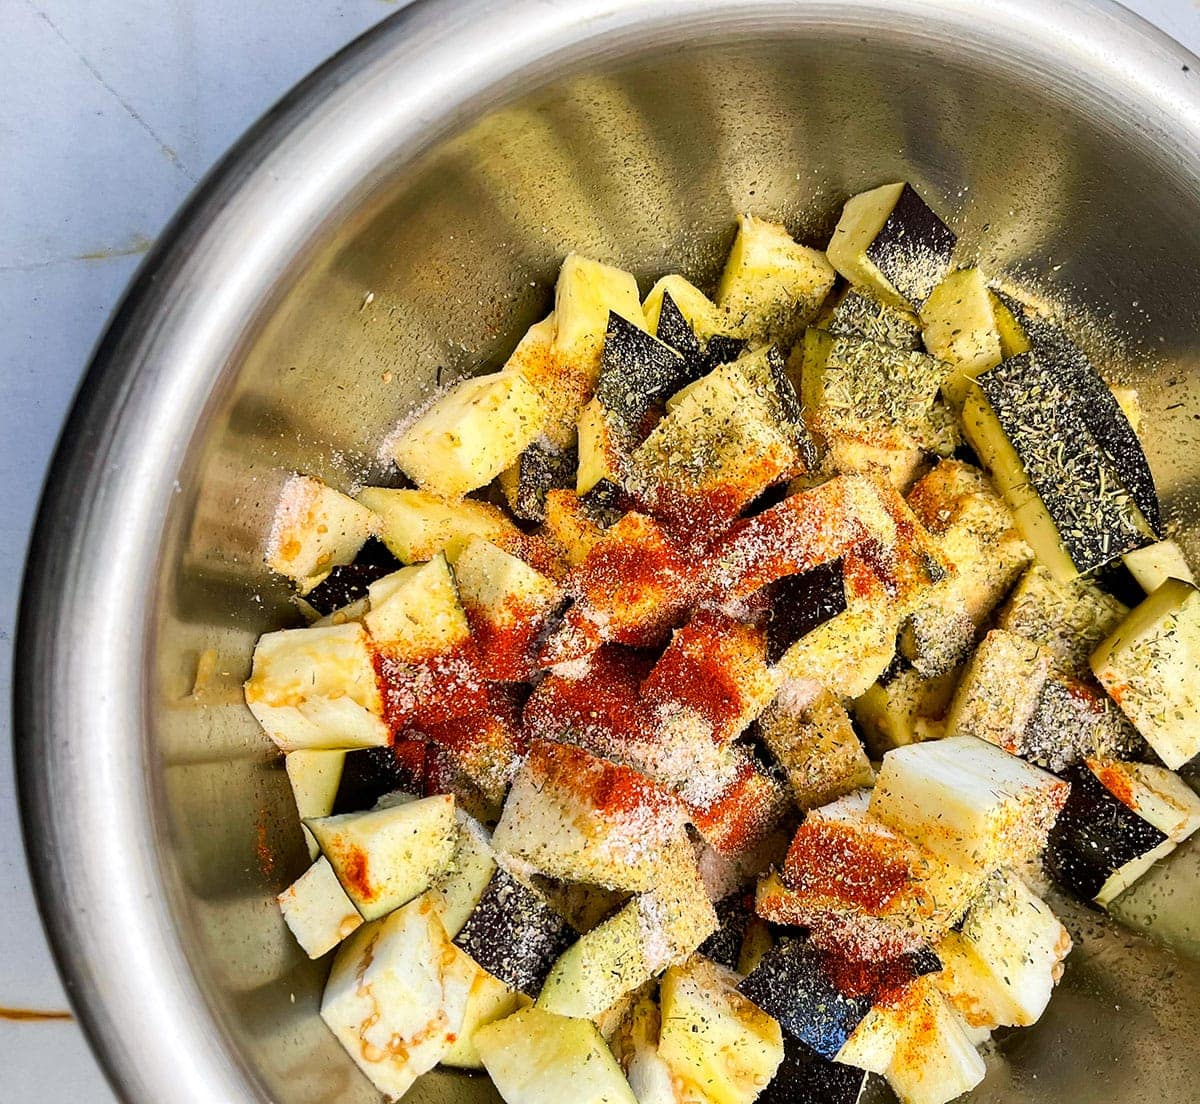 seasoned eggplant cubes in a bowl